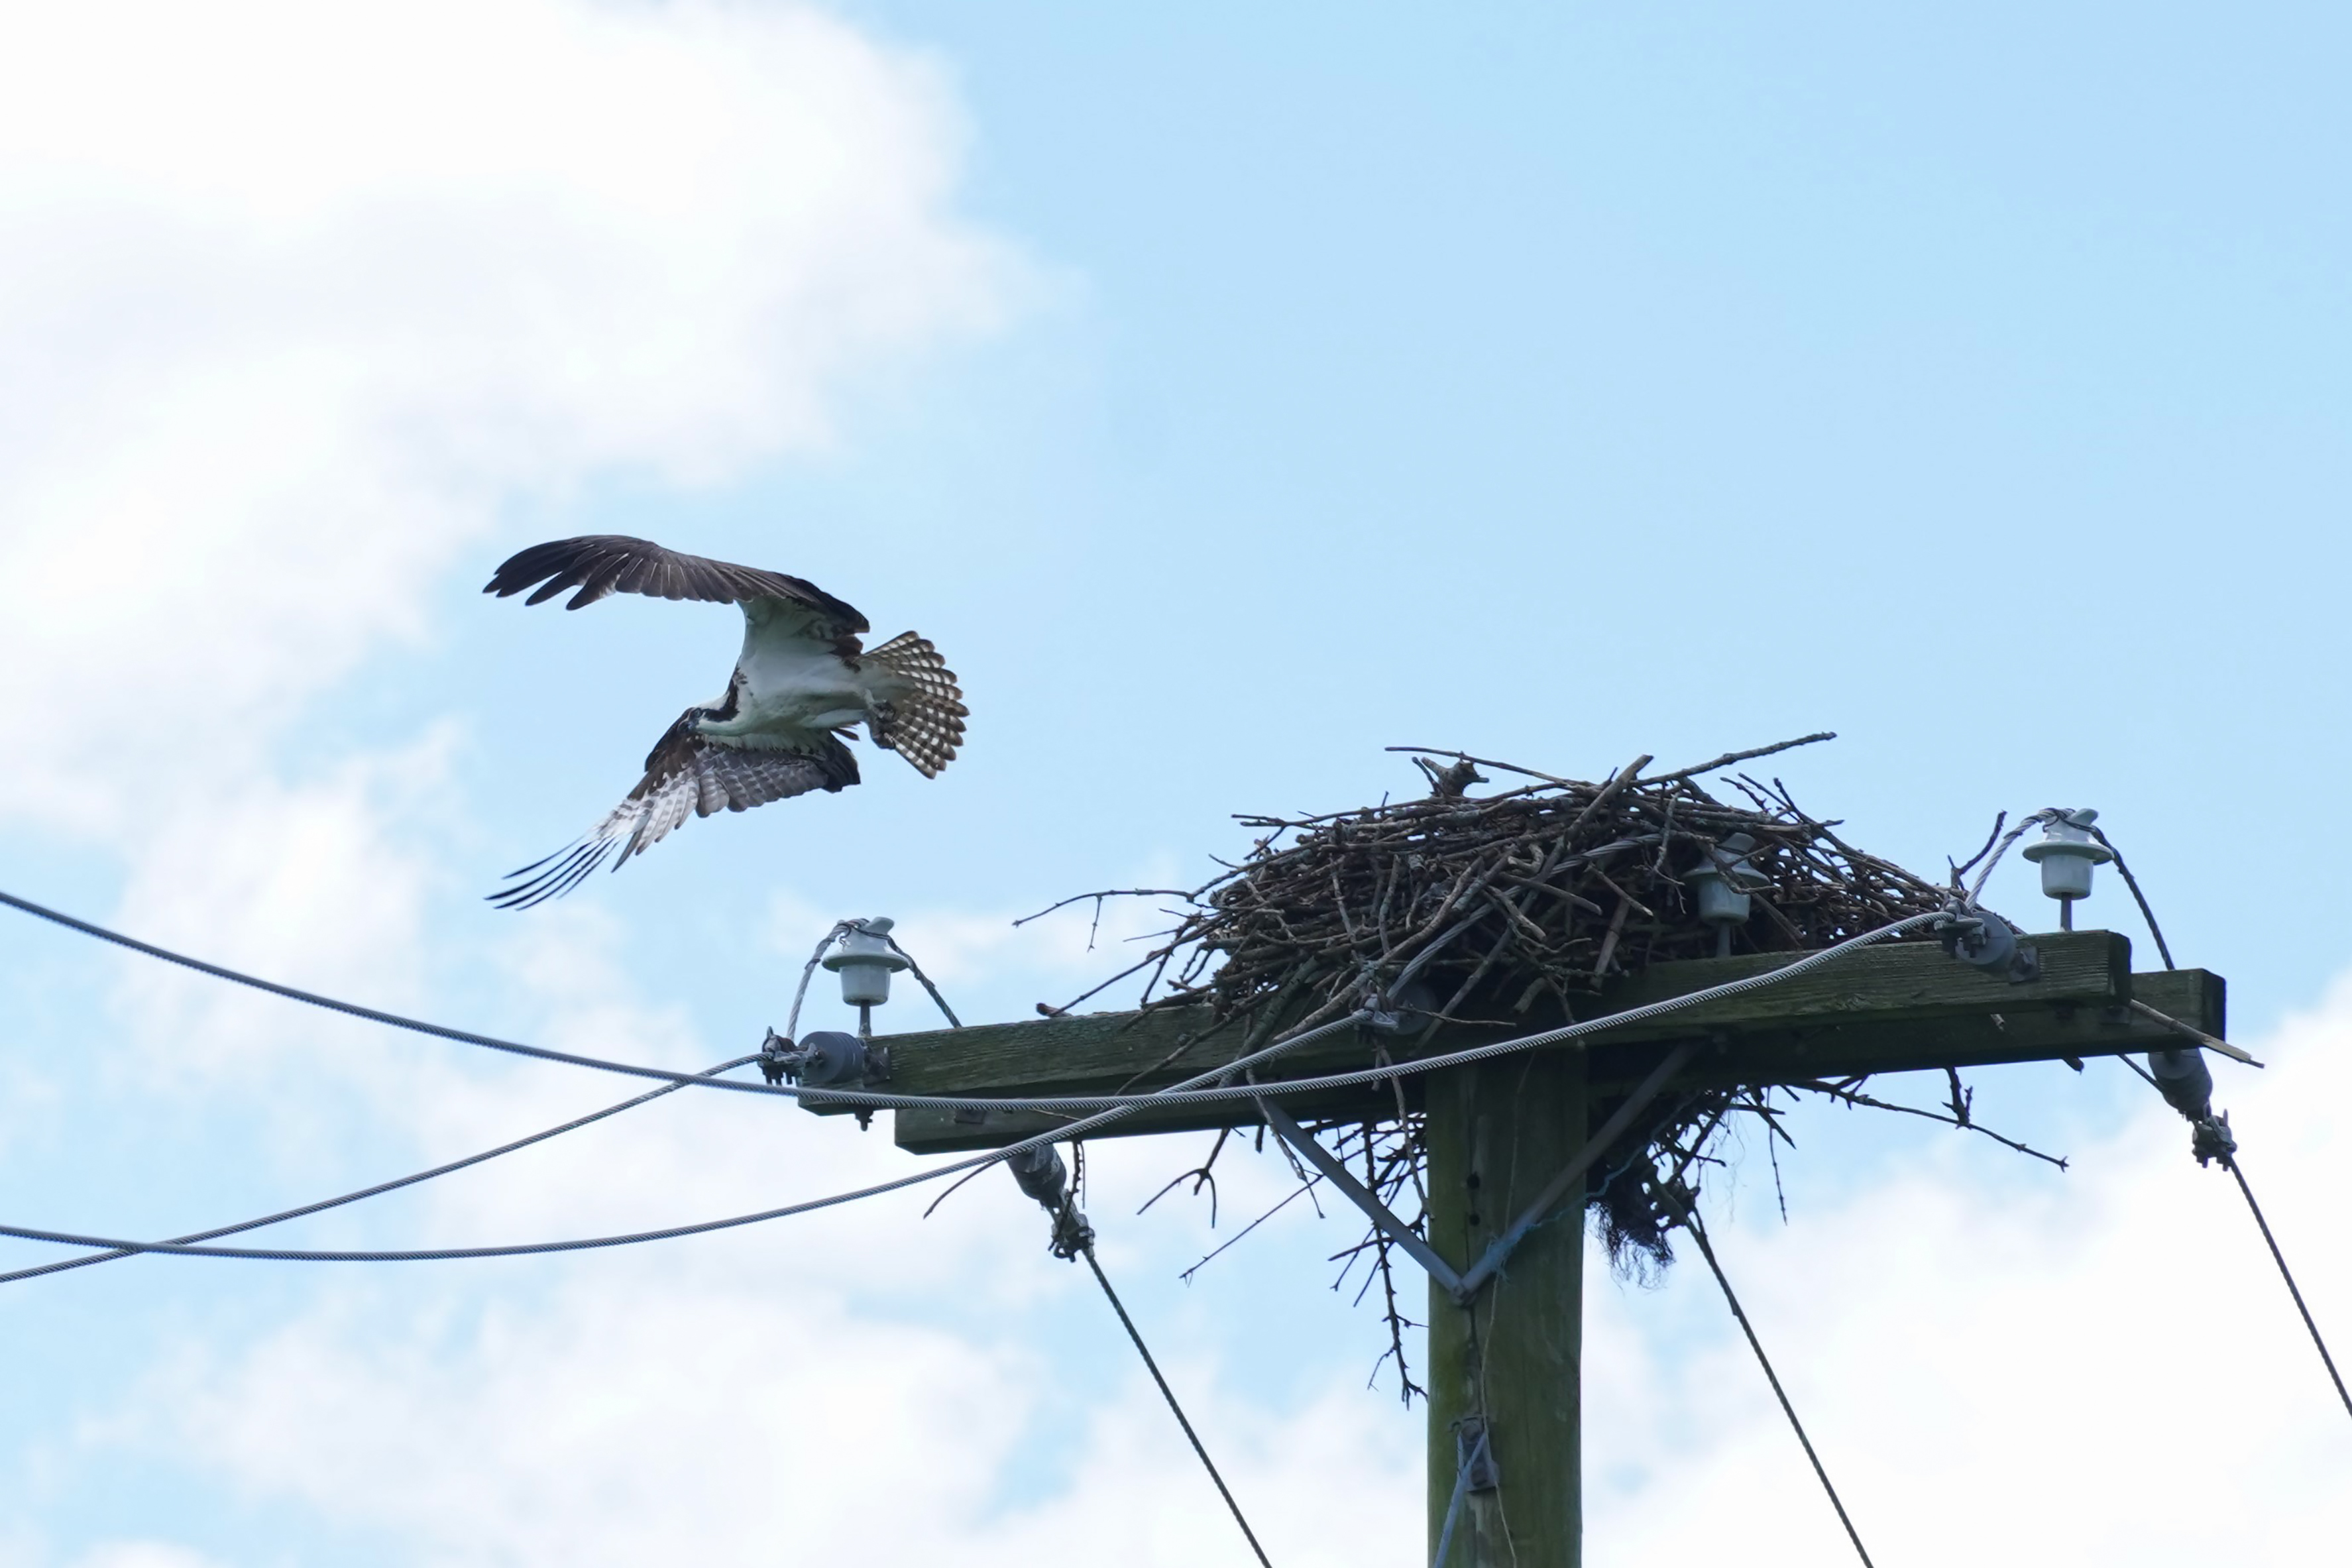 (2/4) This photo of an osprey was taken on Aug. 1. Maybe it's the same osprey that left the fish on the post. nature, wildlife, animal, bird, osprey Photo: Leticia Shaddix